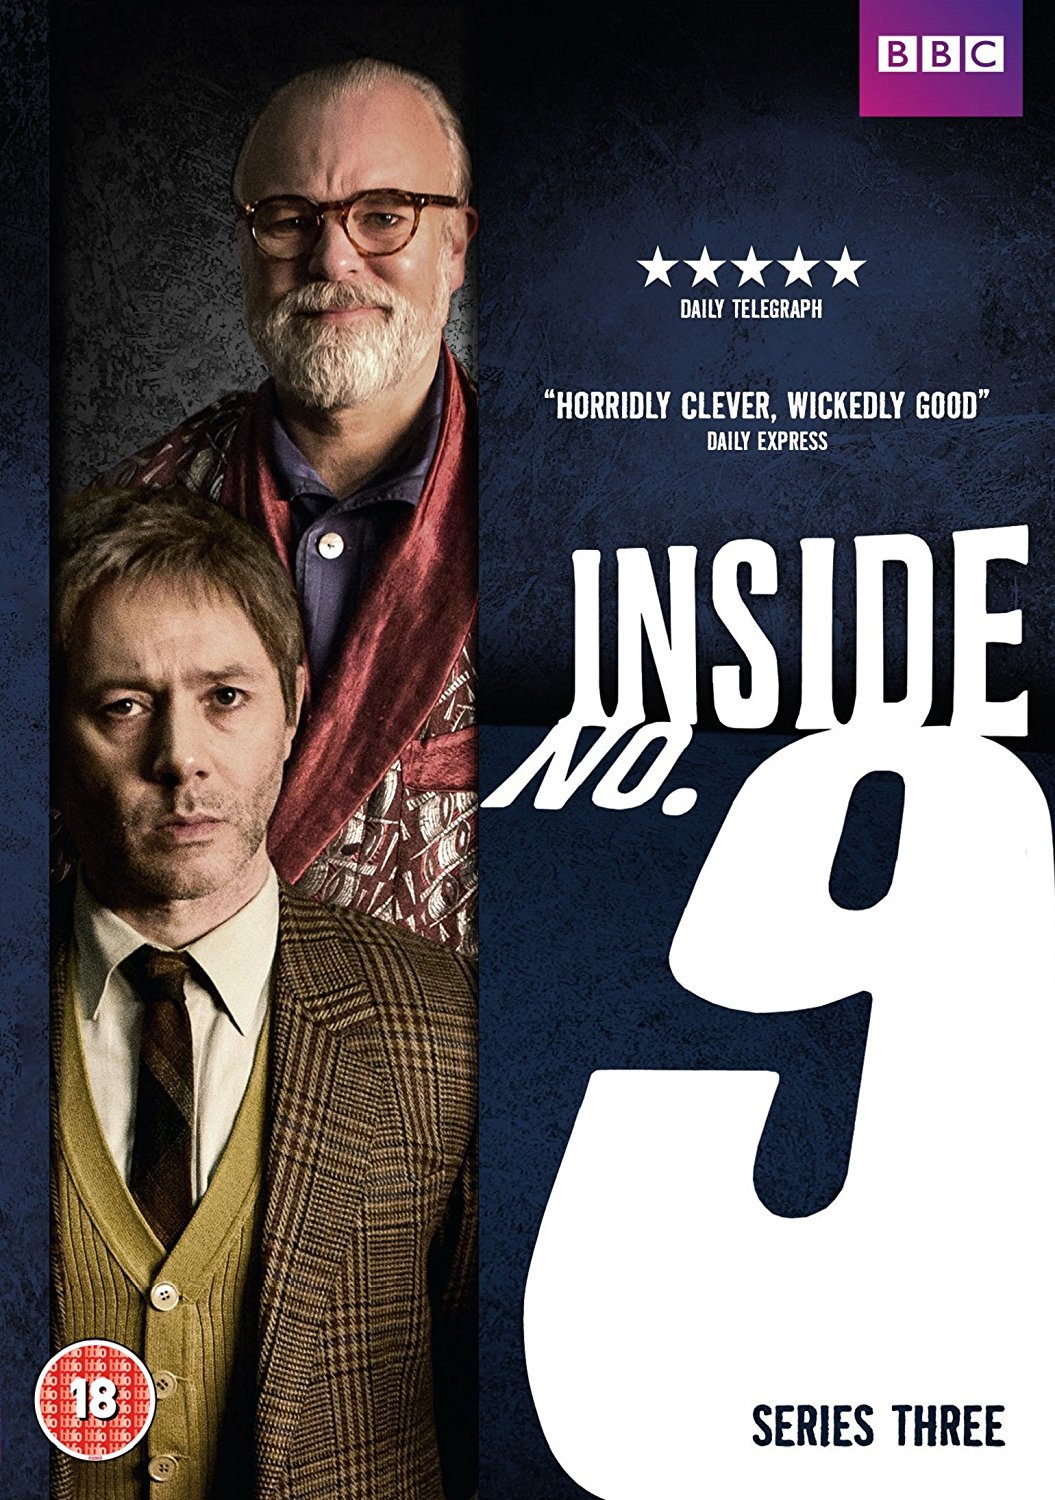 inside no 9 s3 dvd